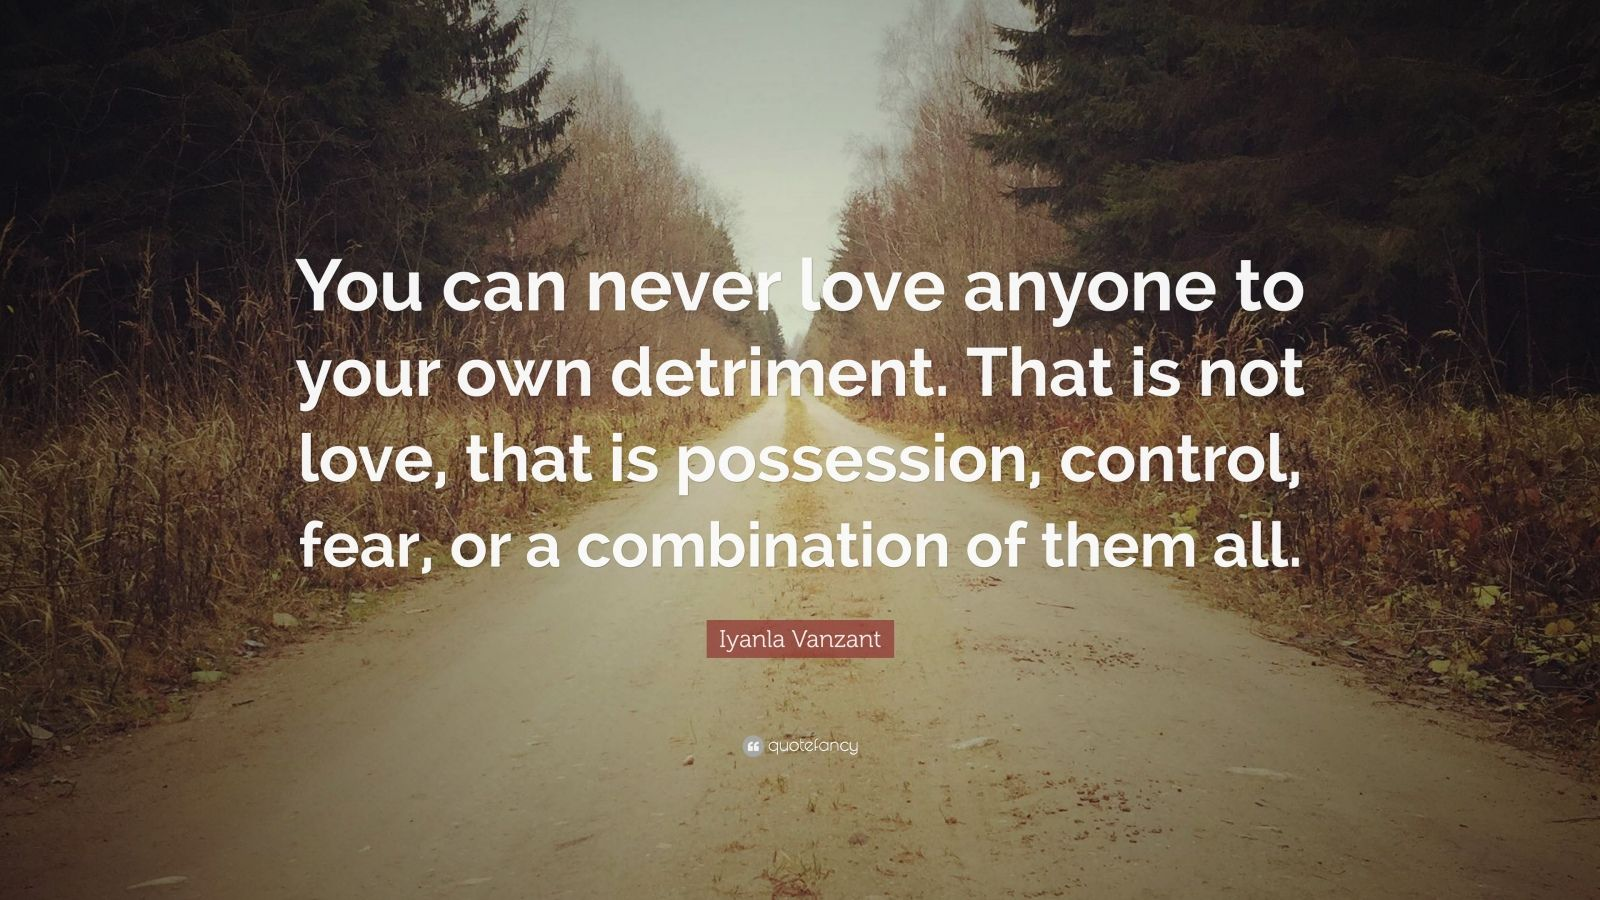 """Iyanla Vanzant Quote: """"You can never love anyone to your own detriment. That is not love, that is possession, control, fear, or a combination of them all."""""""